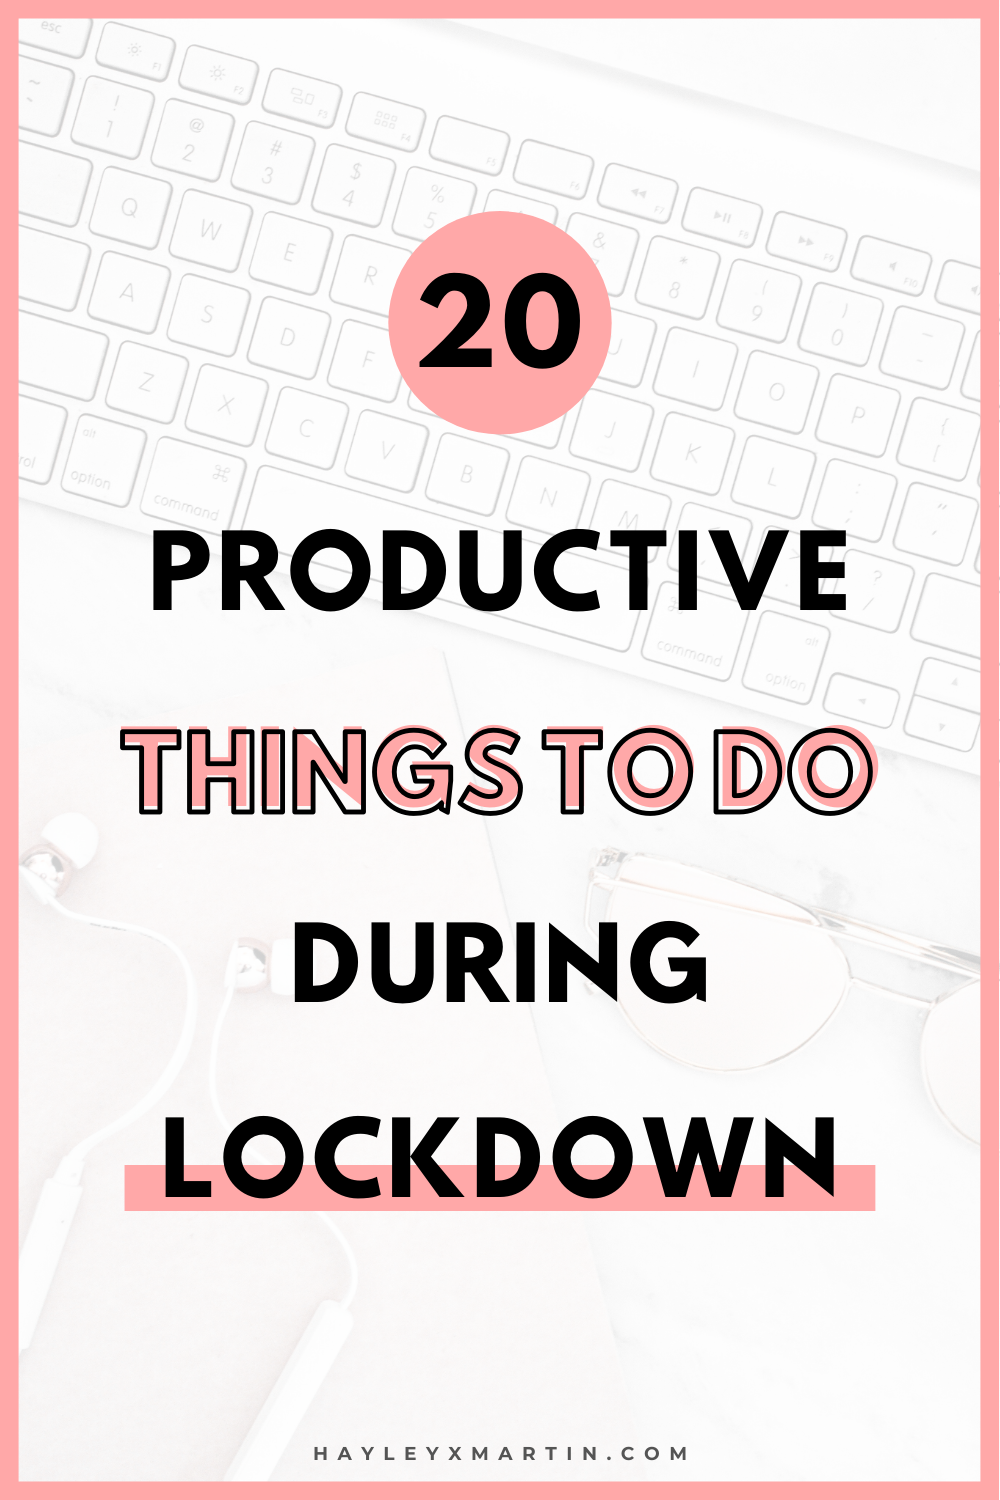 20 PRODUCTIVE THINGS TO DO DURING LOCKDOWN | HAYLEYXMARTIN